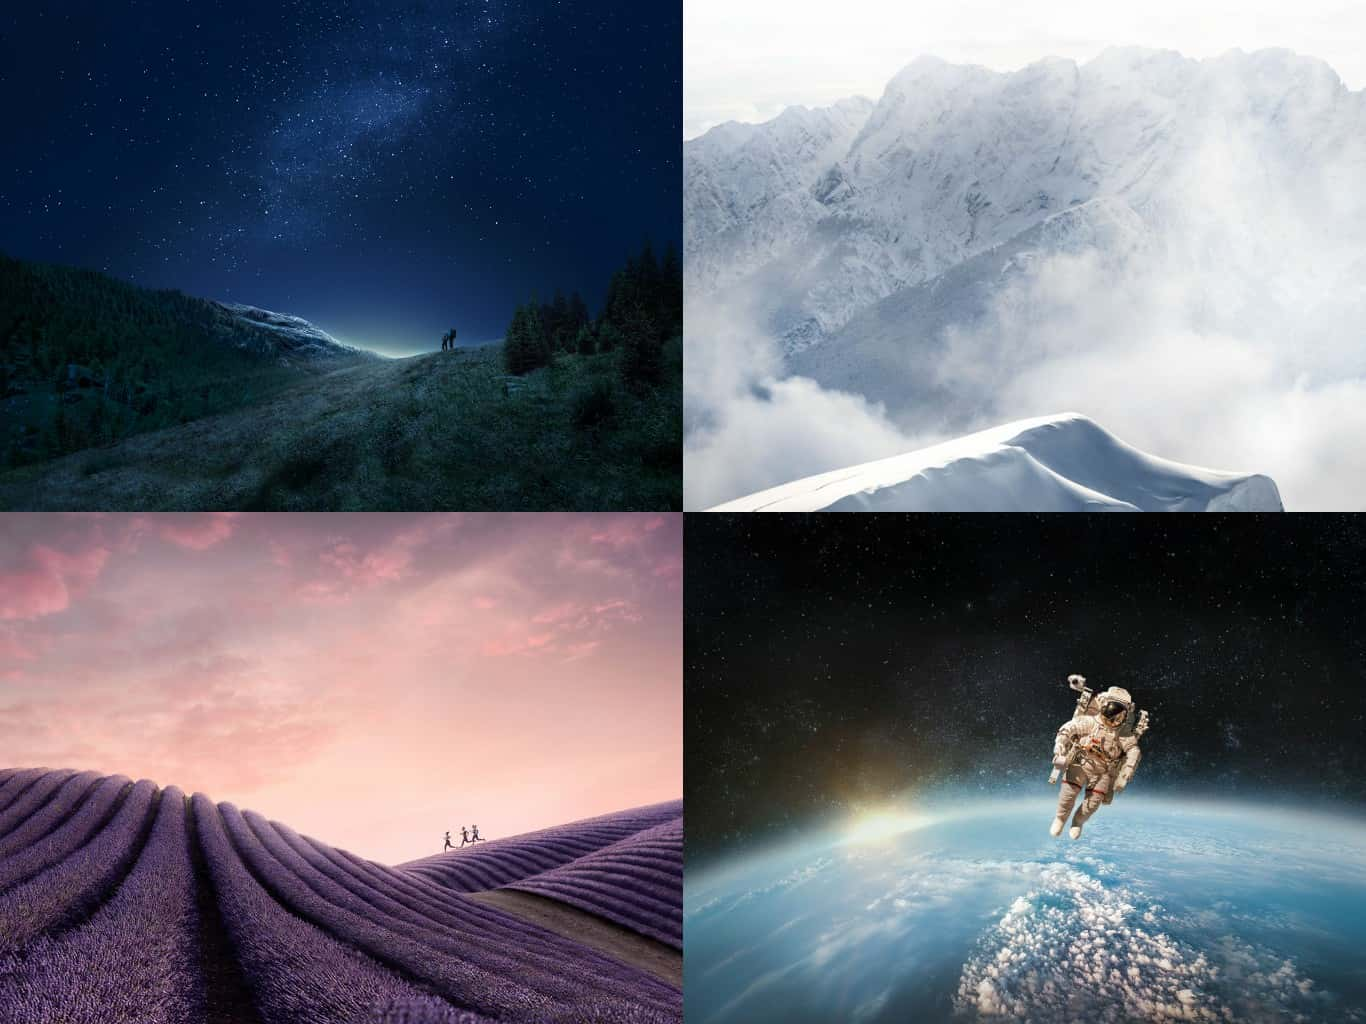 Galaxy S8 Wallpapers Pop Up This Time In A 43 Aspect Ratio 1366x1024